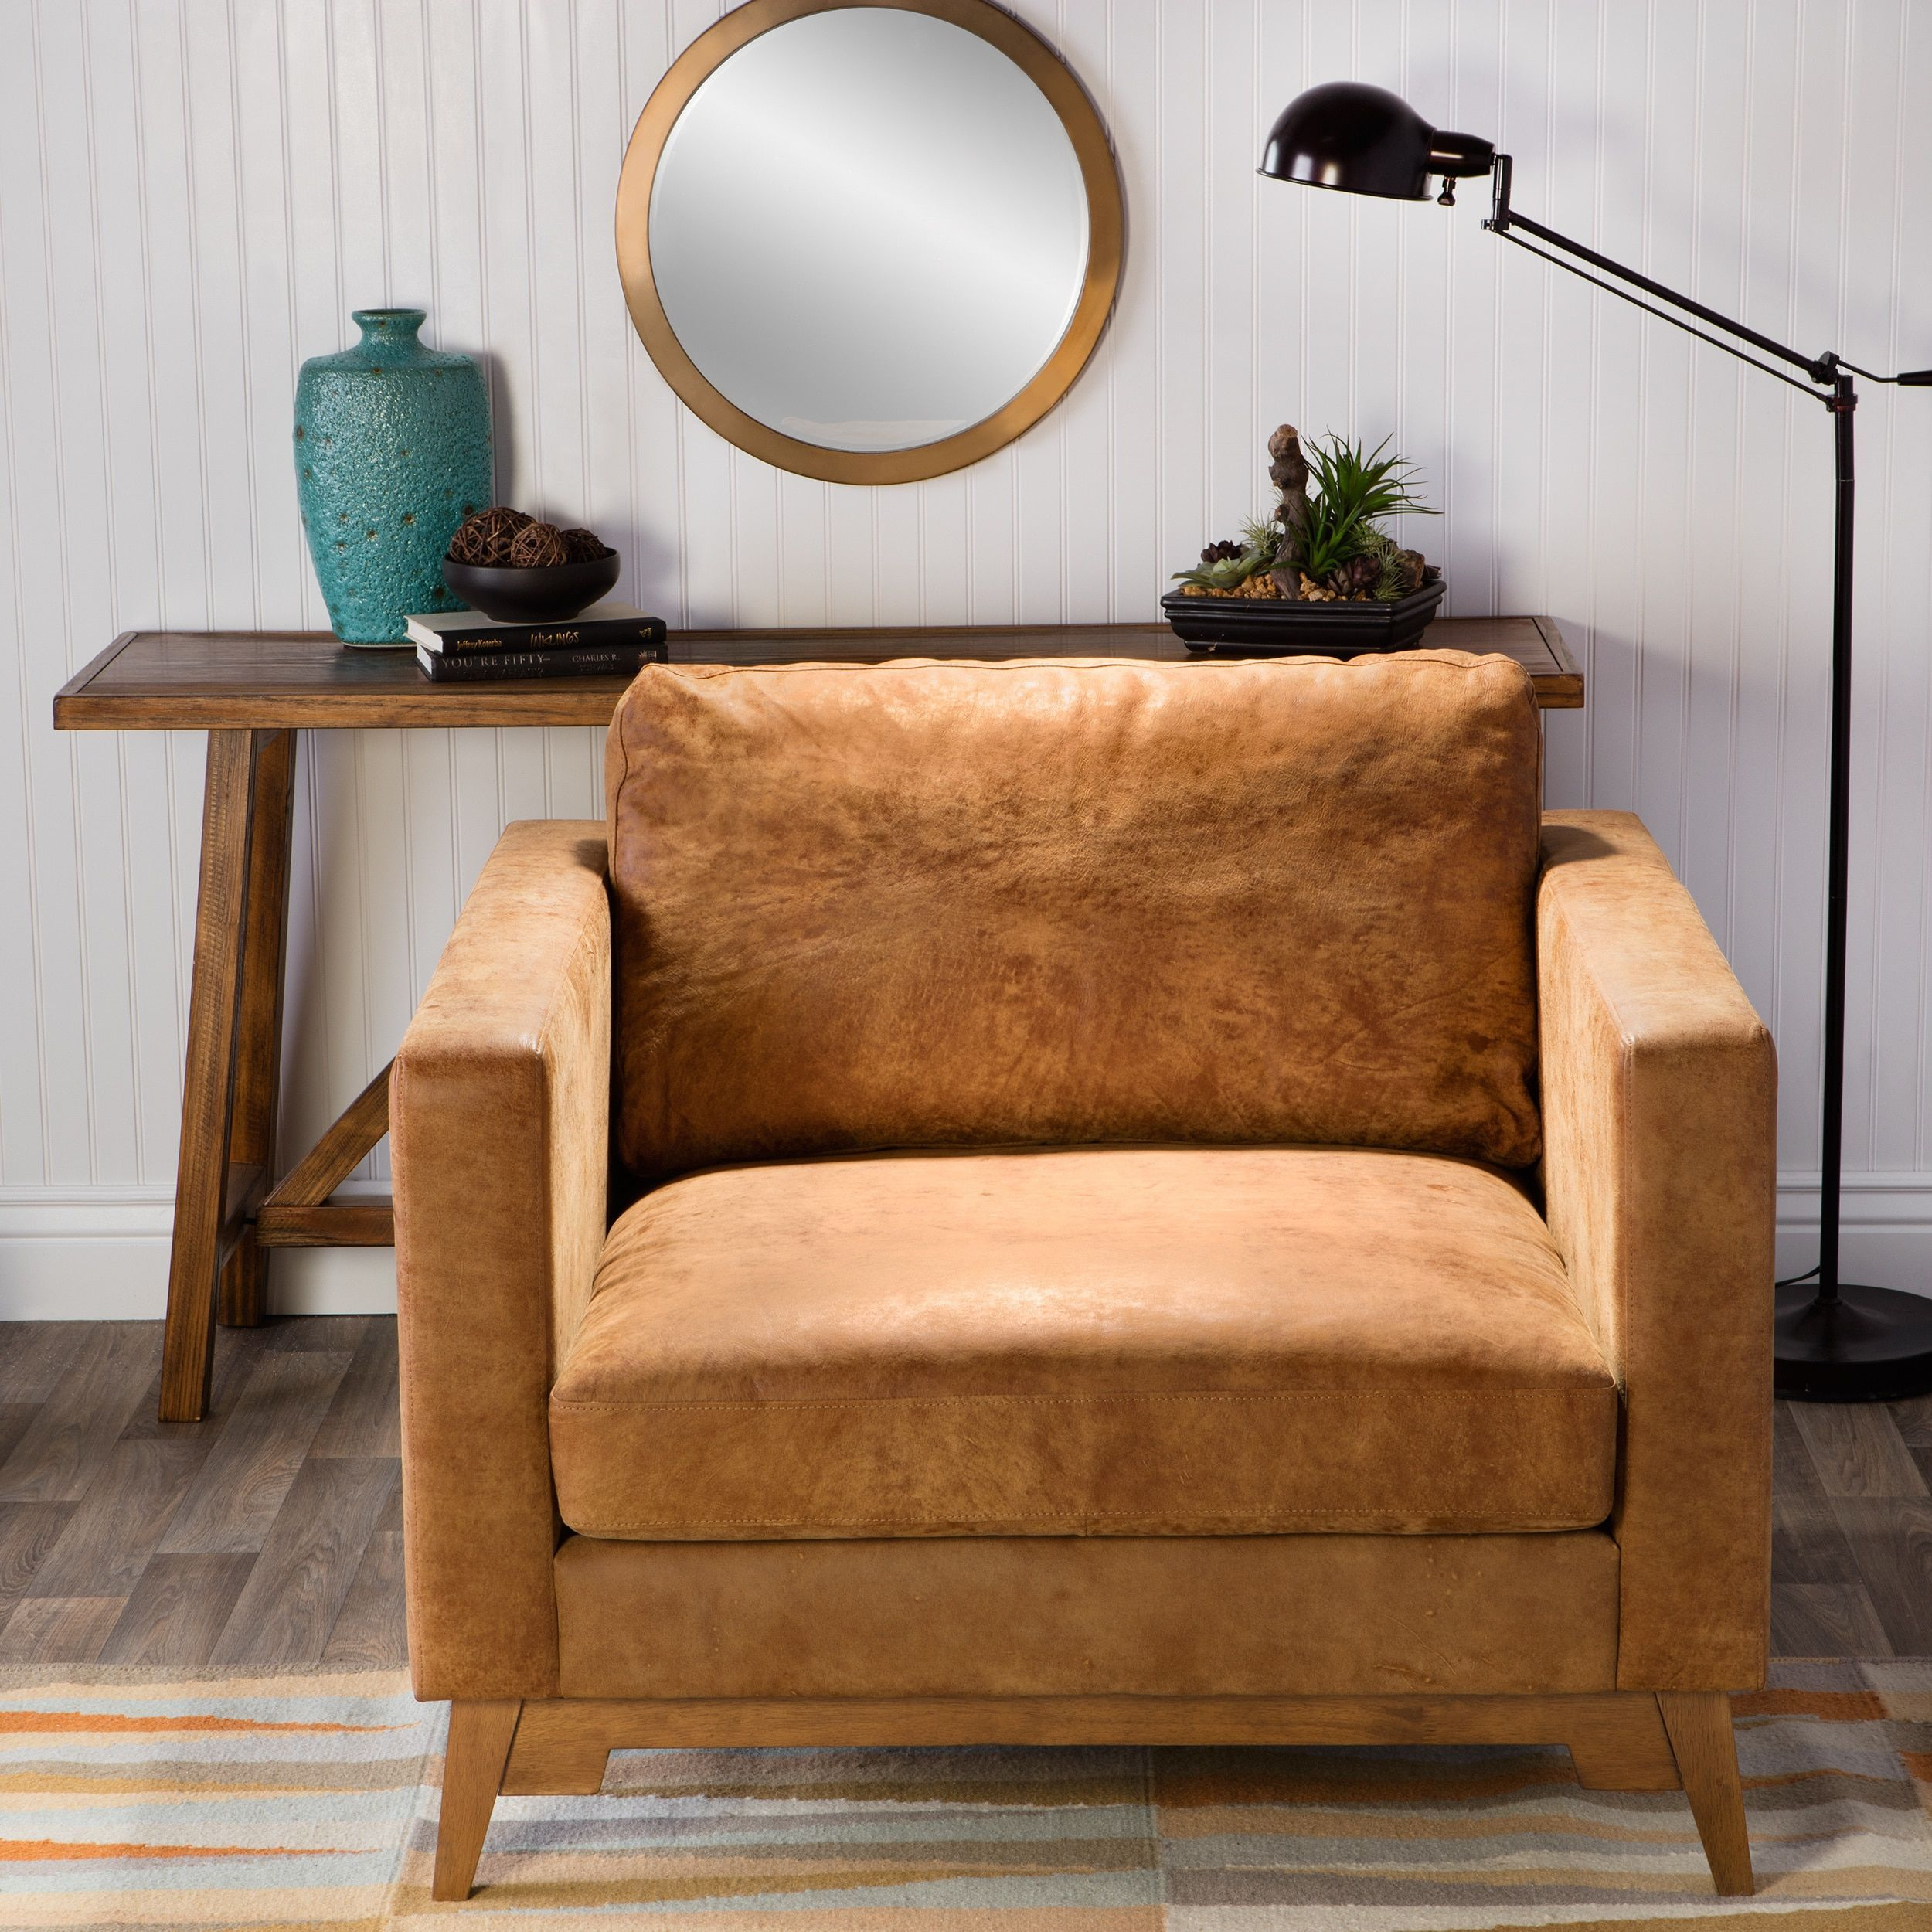 Charmant Filmore Oversized Tan Italian Leather Club Chair   Overstock.com Shopping    The Best Deals